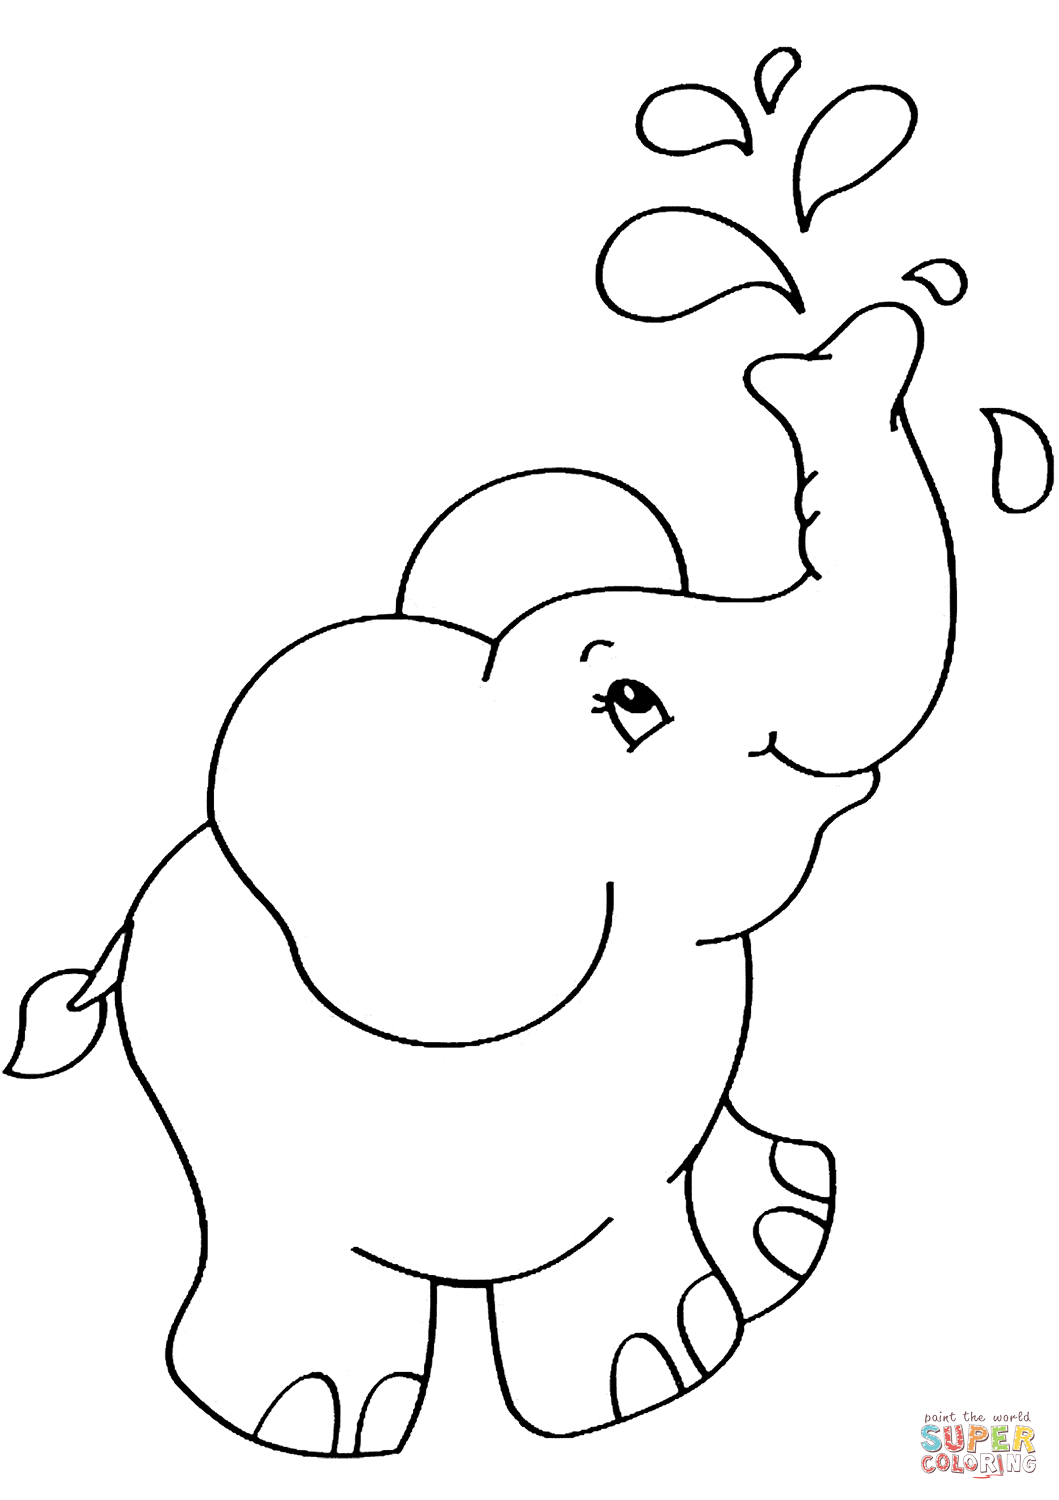 Elephant Colouring Pages Love Portraits